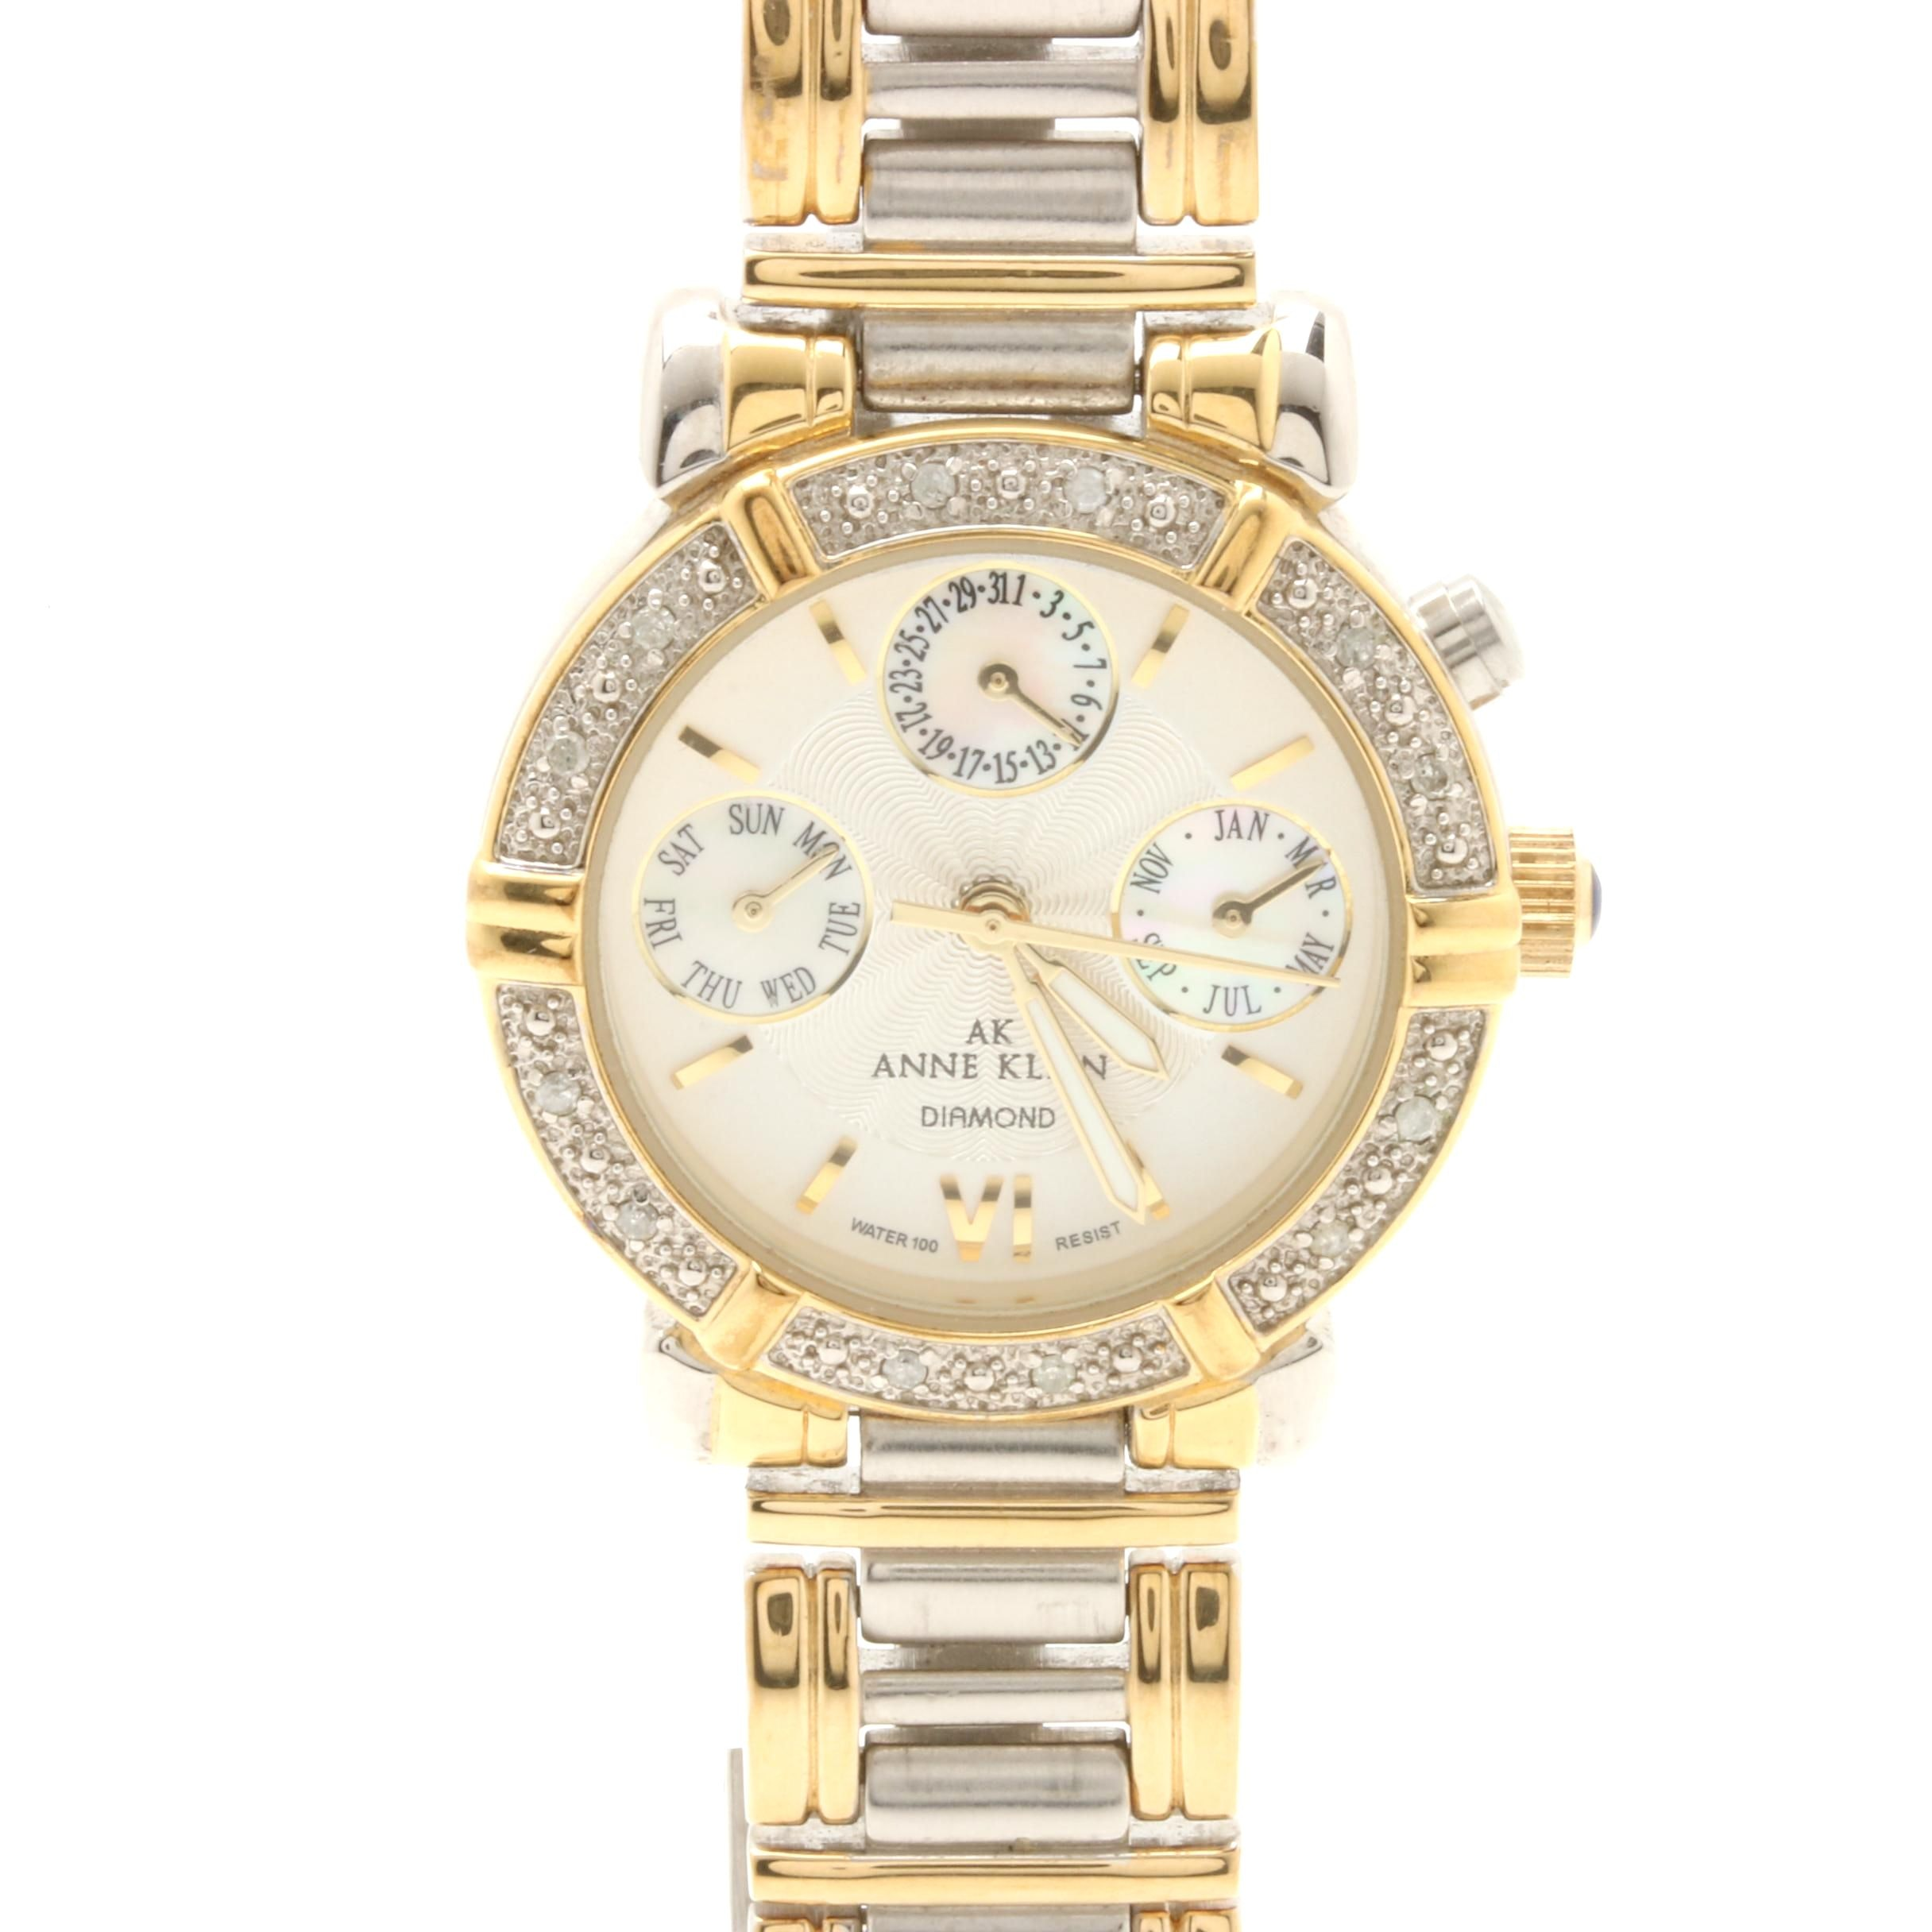 Anne Klein Two Tone Diamond and Mother of Pearl Wristwatch